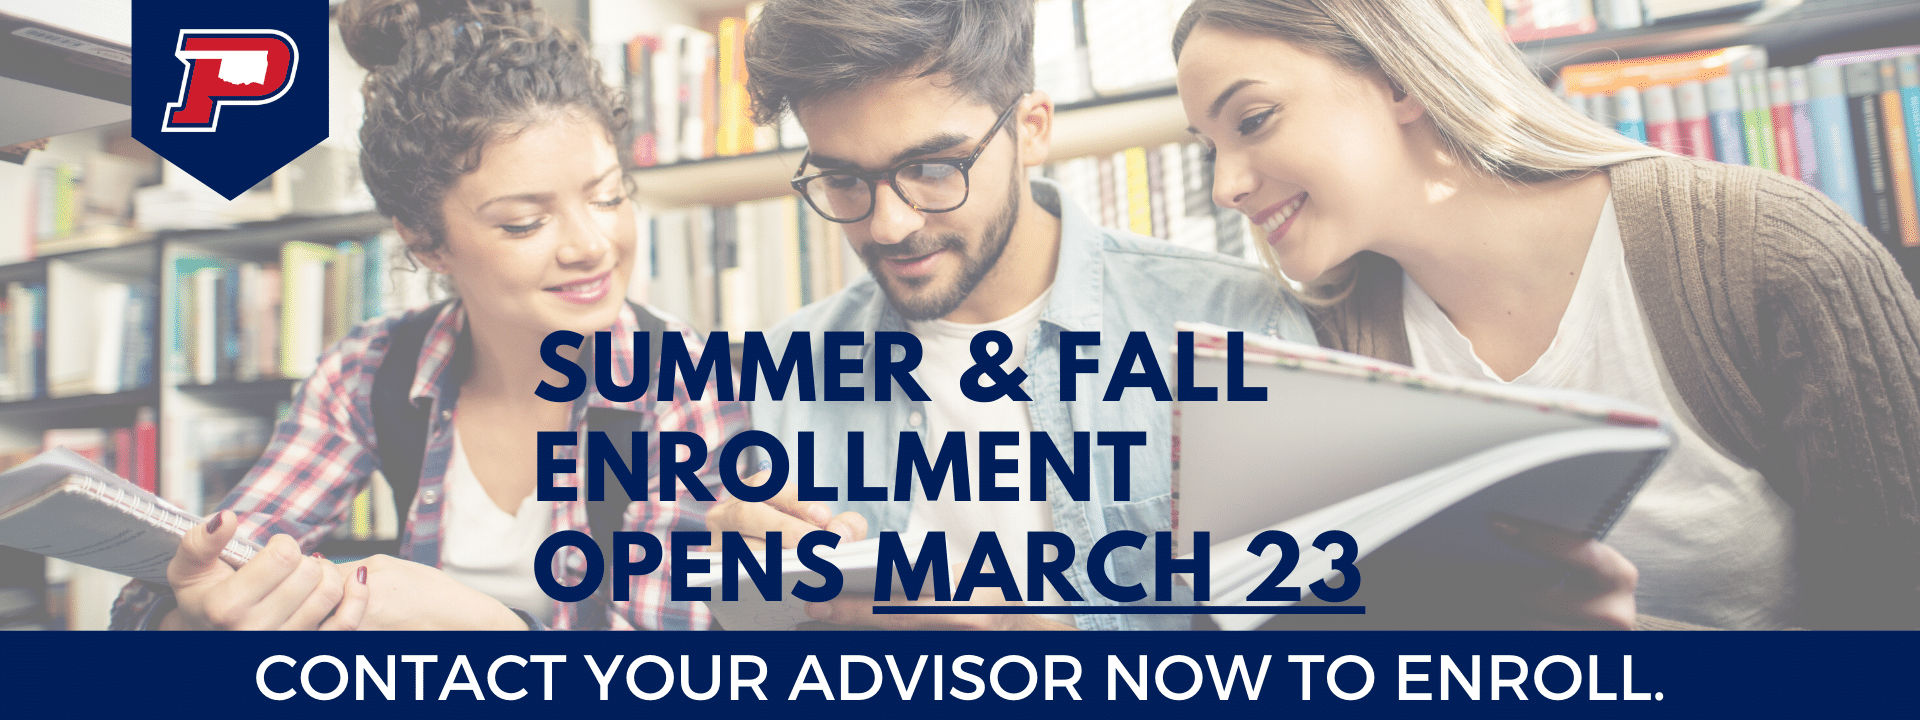 Summer and Fall Enrollment Opens March 23 - Contact your advisor now to enroll